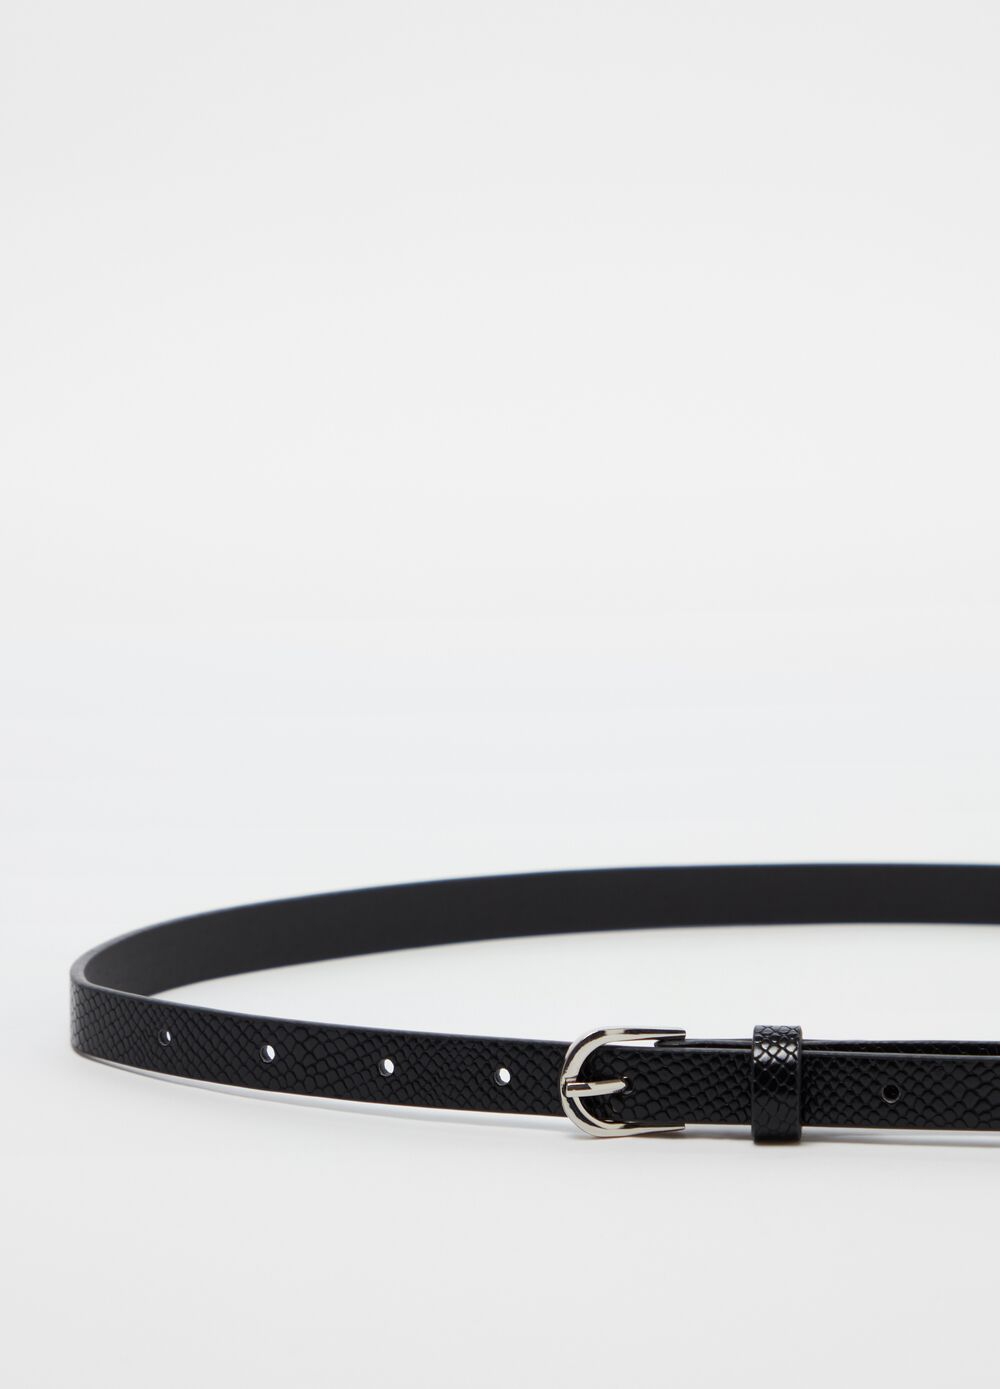 Three-pack braided and animal patterned belts